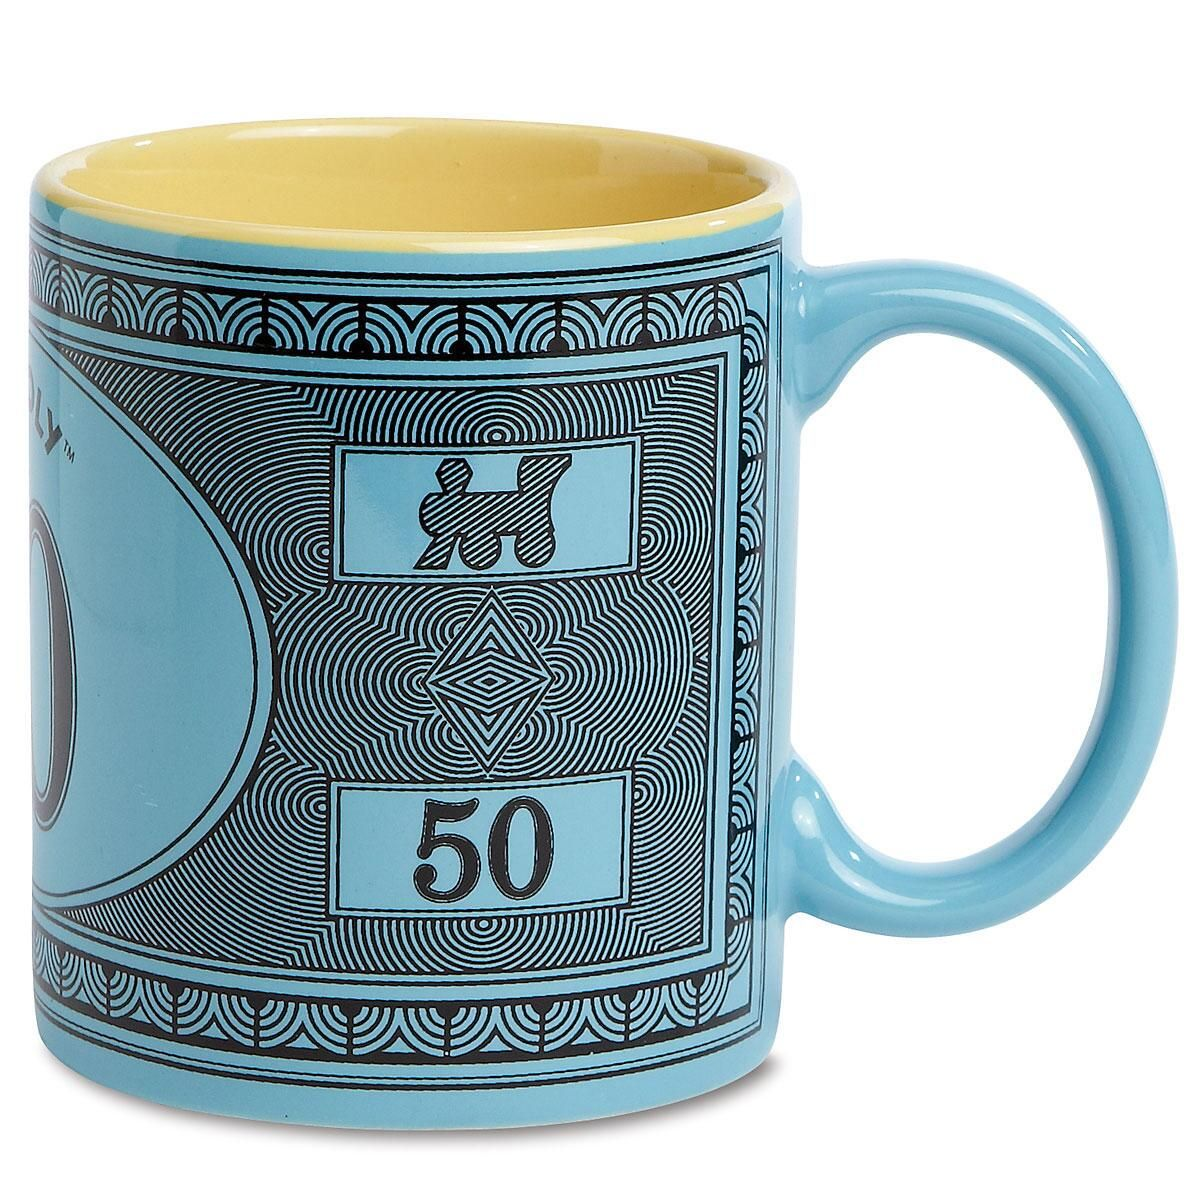 $50 Monopoly® Money Mug